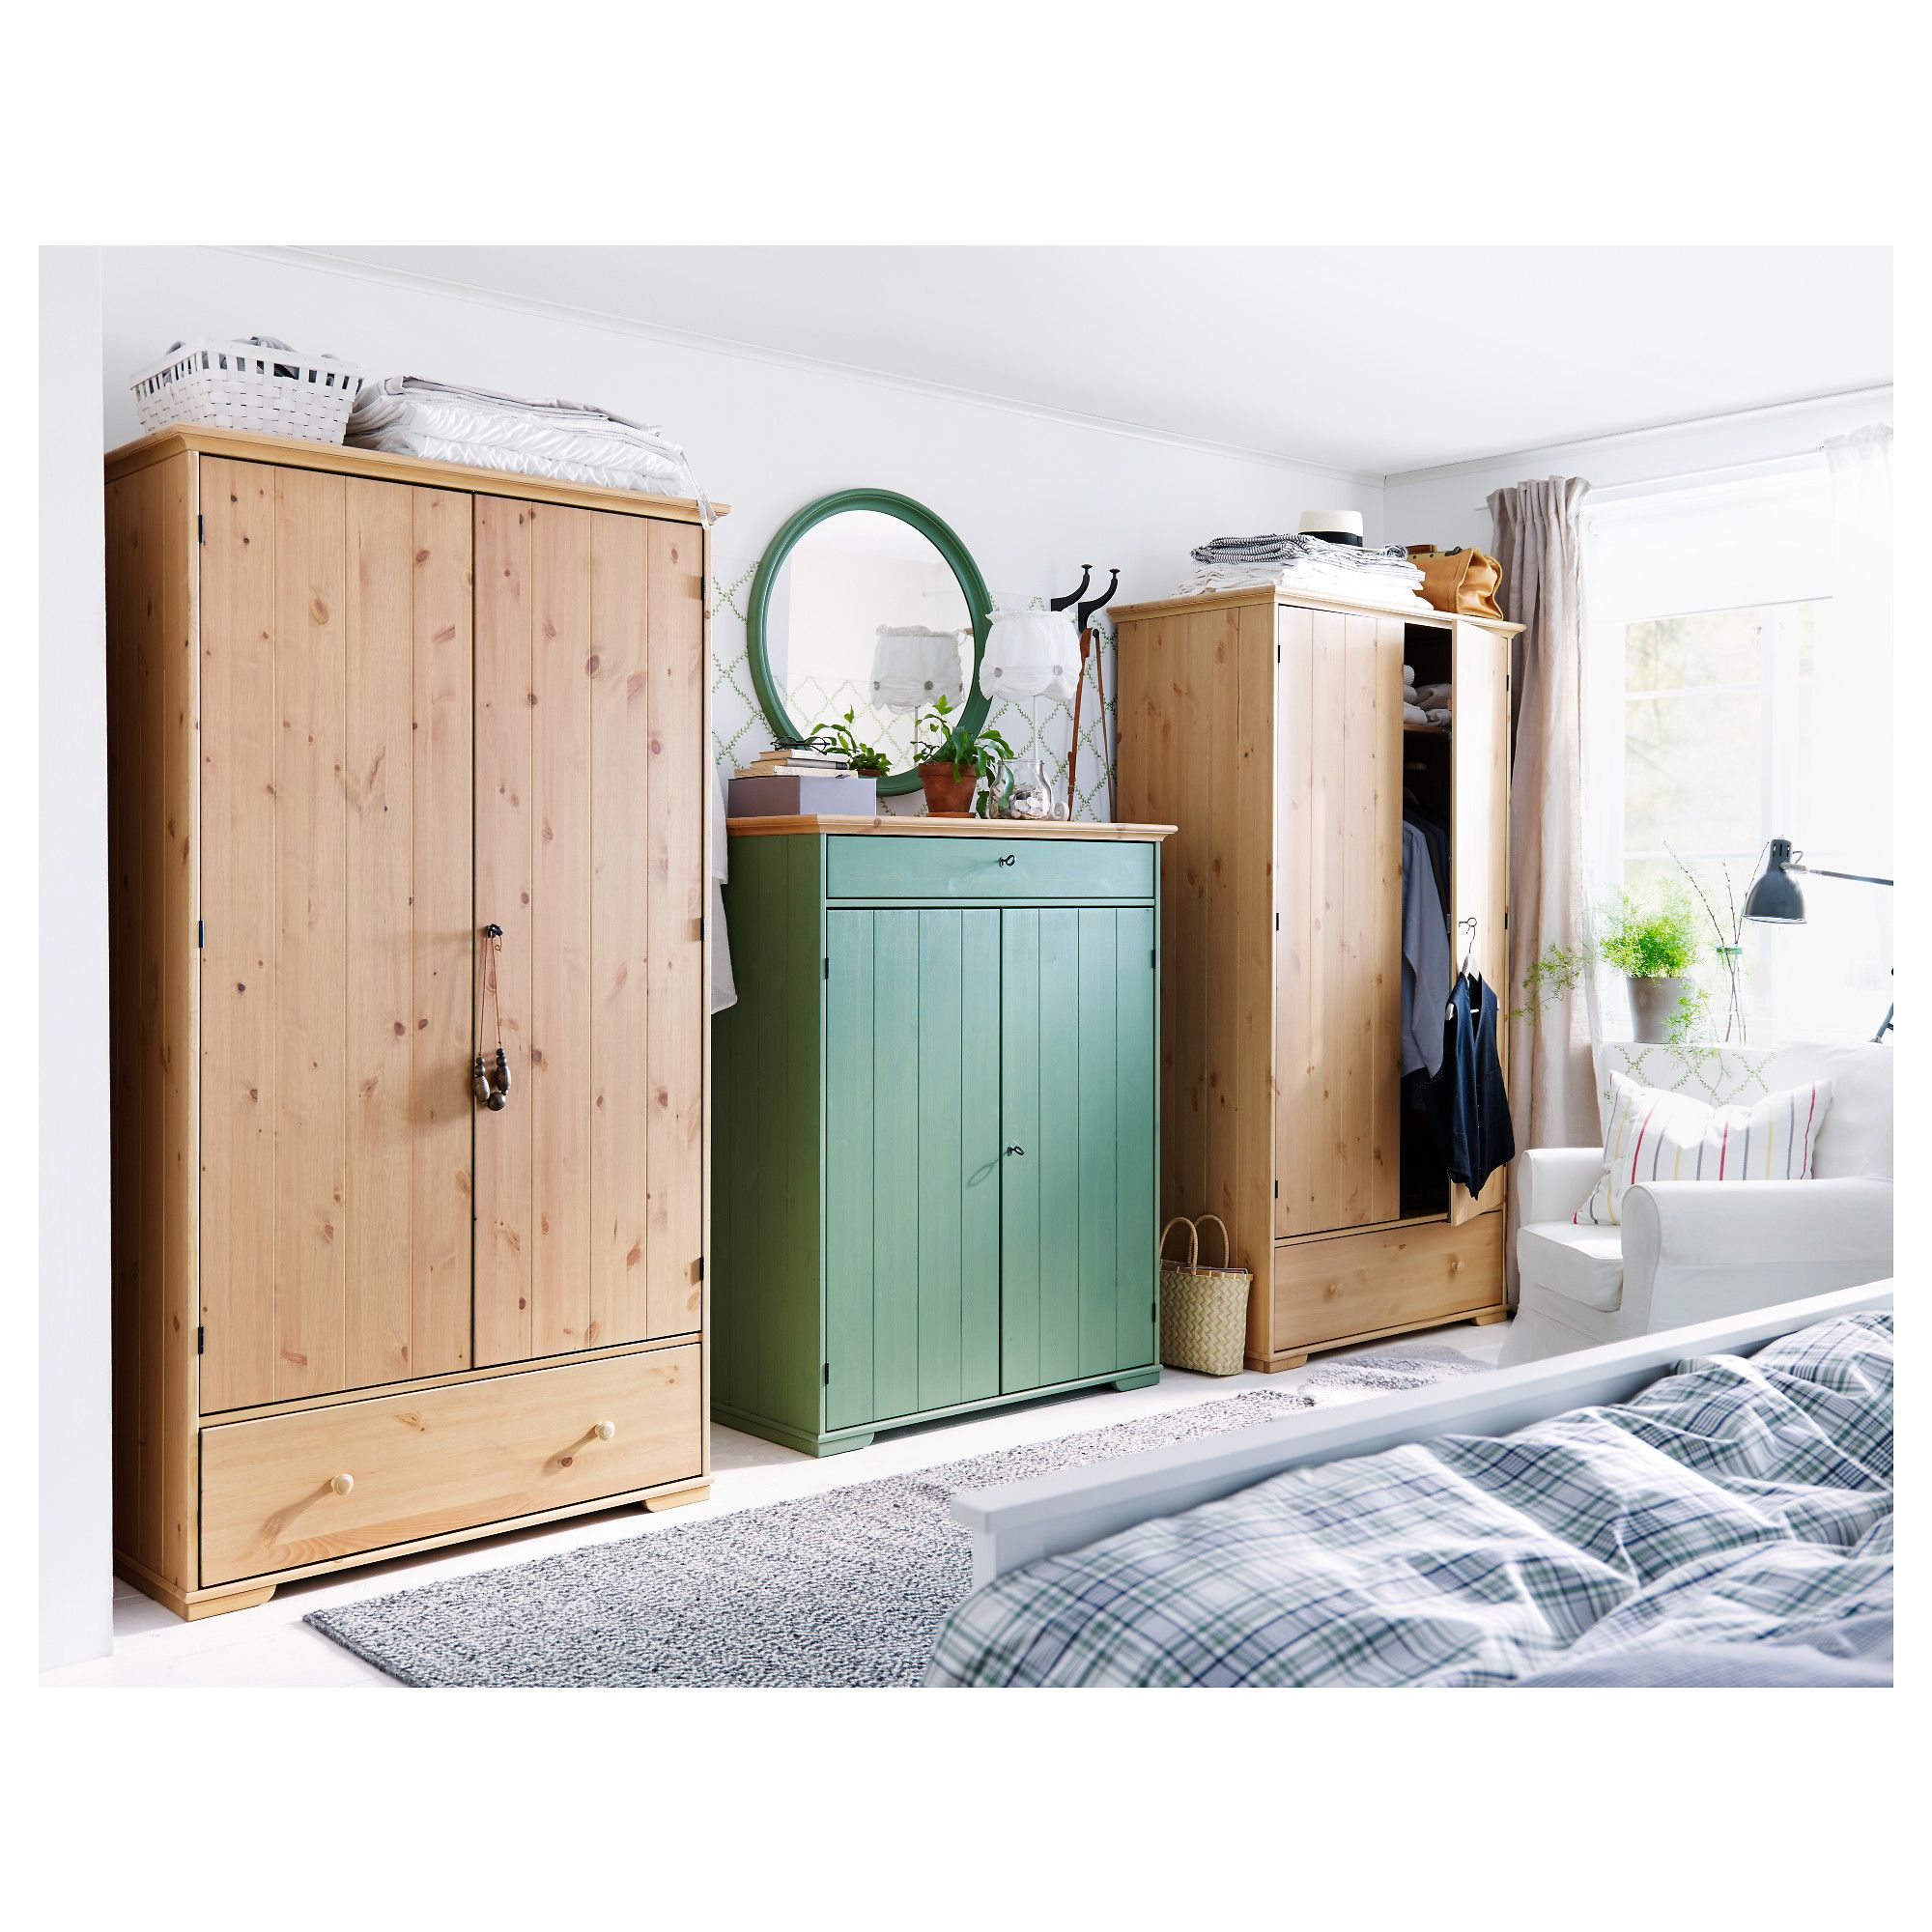 Bedroom Furniture Chairs Bedroom Hanging Cabinet Design Bedroom View From Bed D I Y Bedroom Decor: HURDAL Linen Cabinet - IKEA